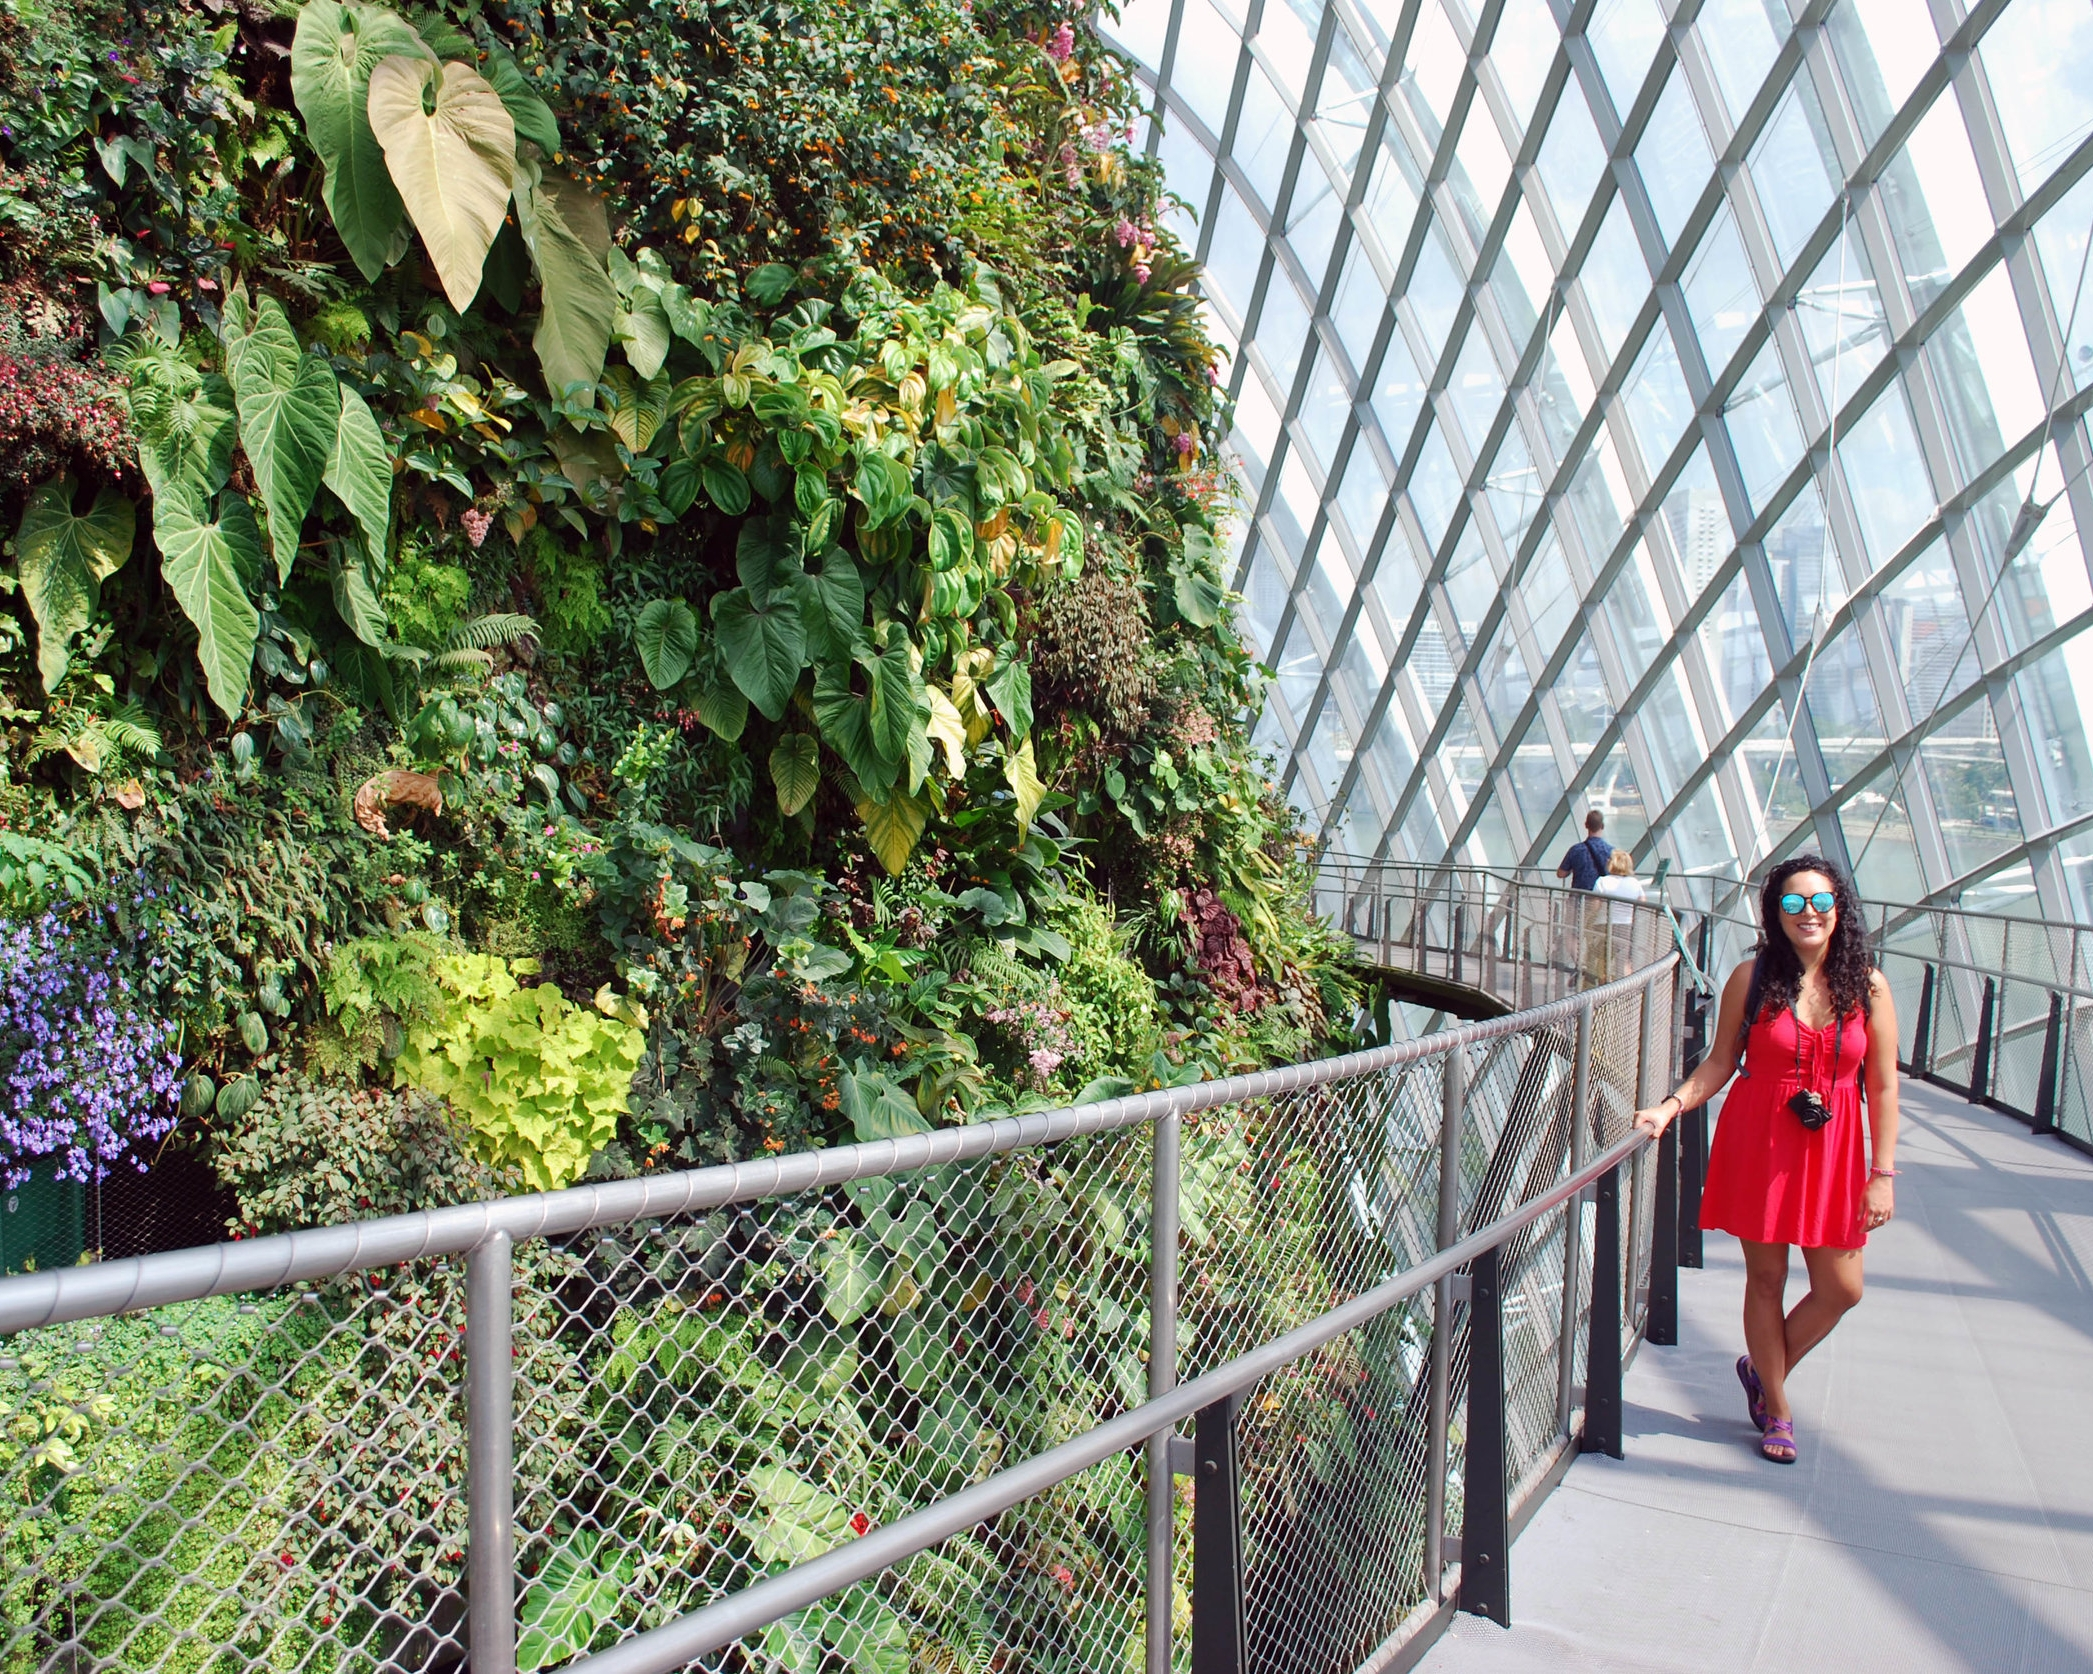 3 days in singapore on a backpackers budget